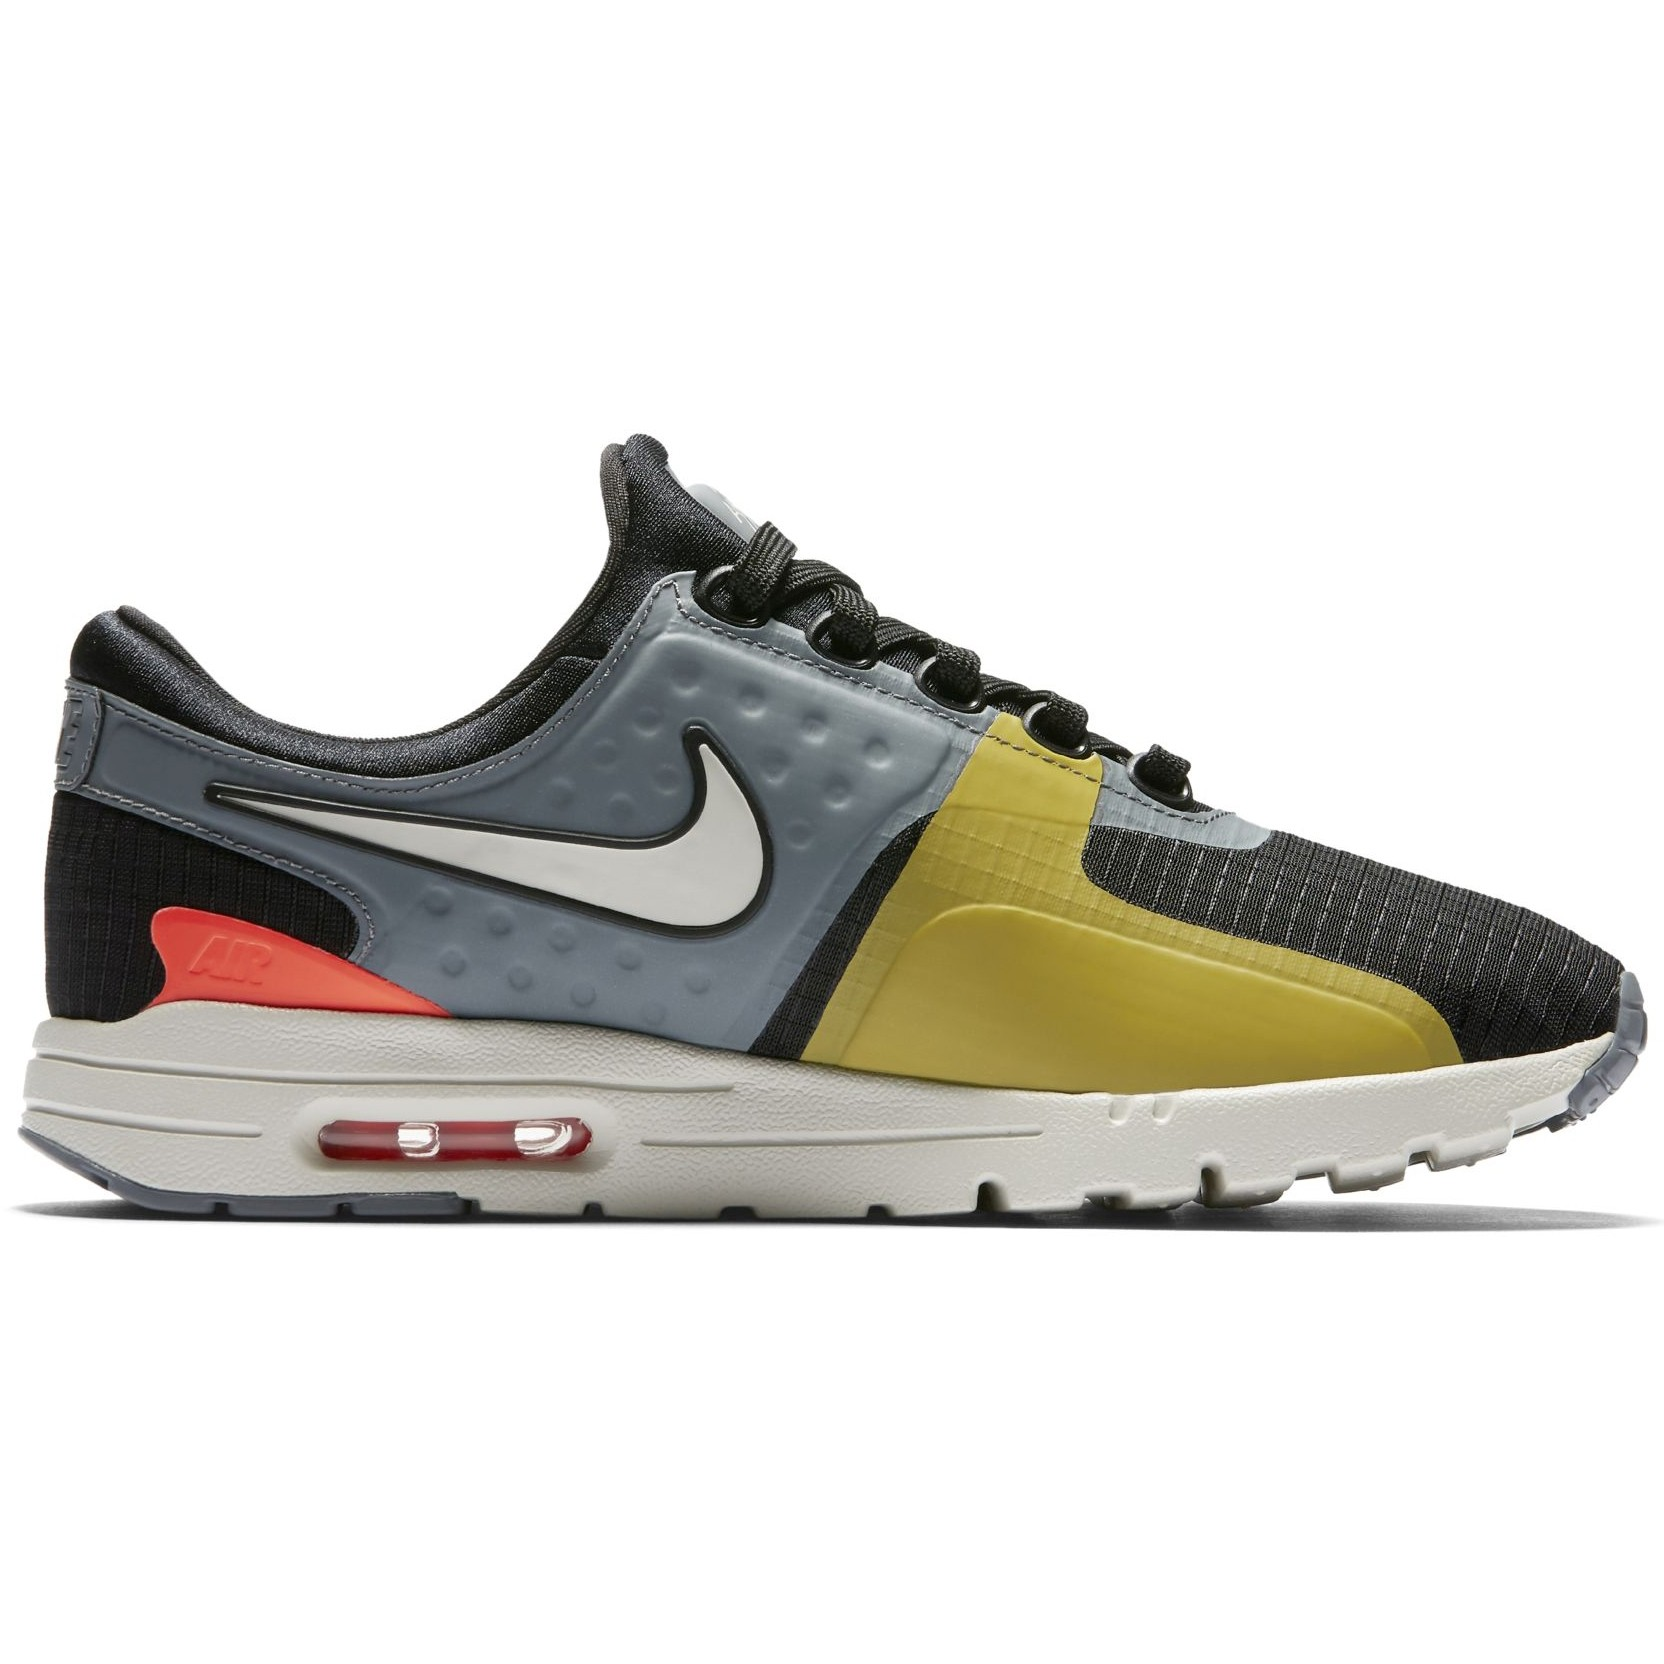 Nike WMNS Air Max Zero SI - Nike Air Max shoes